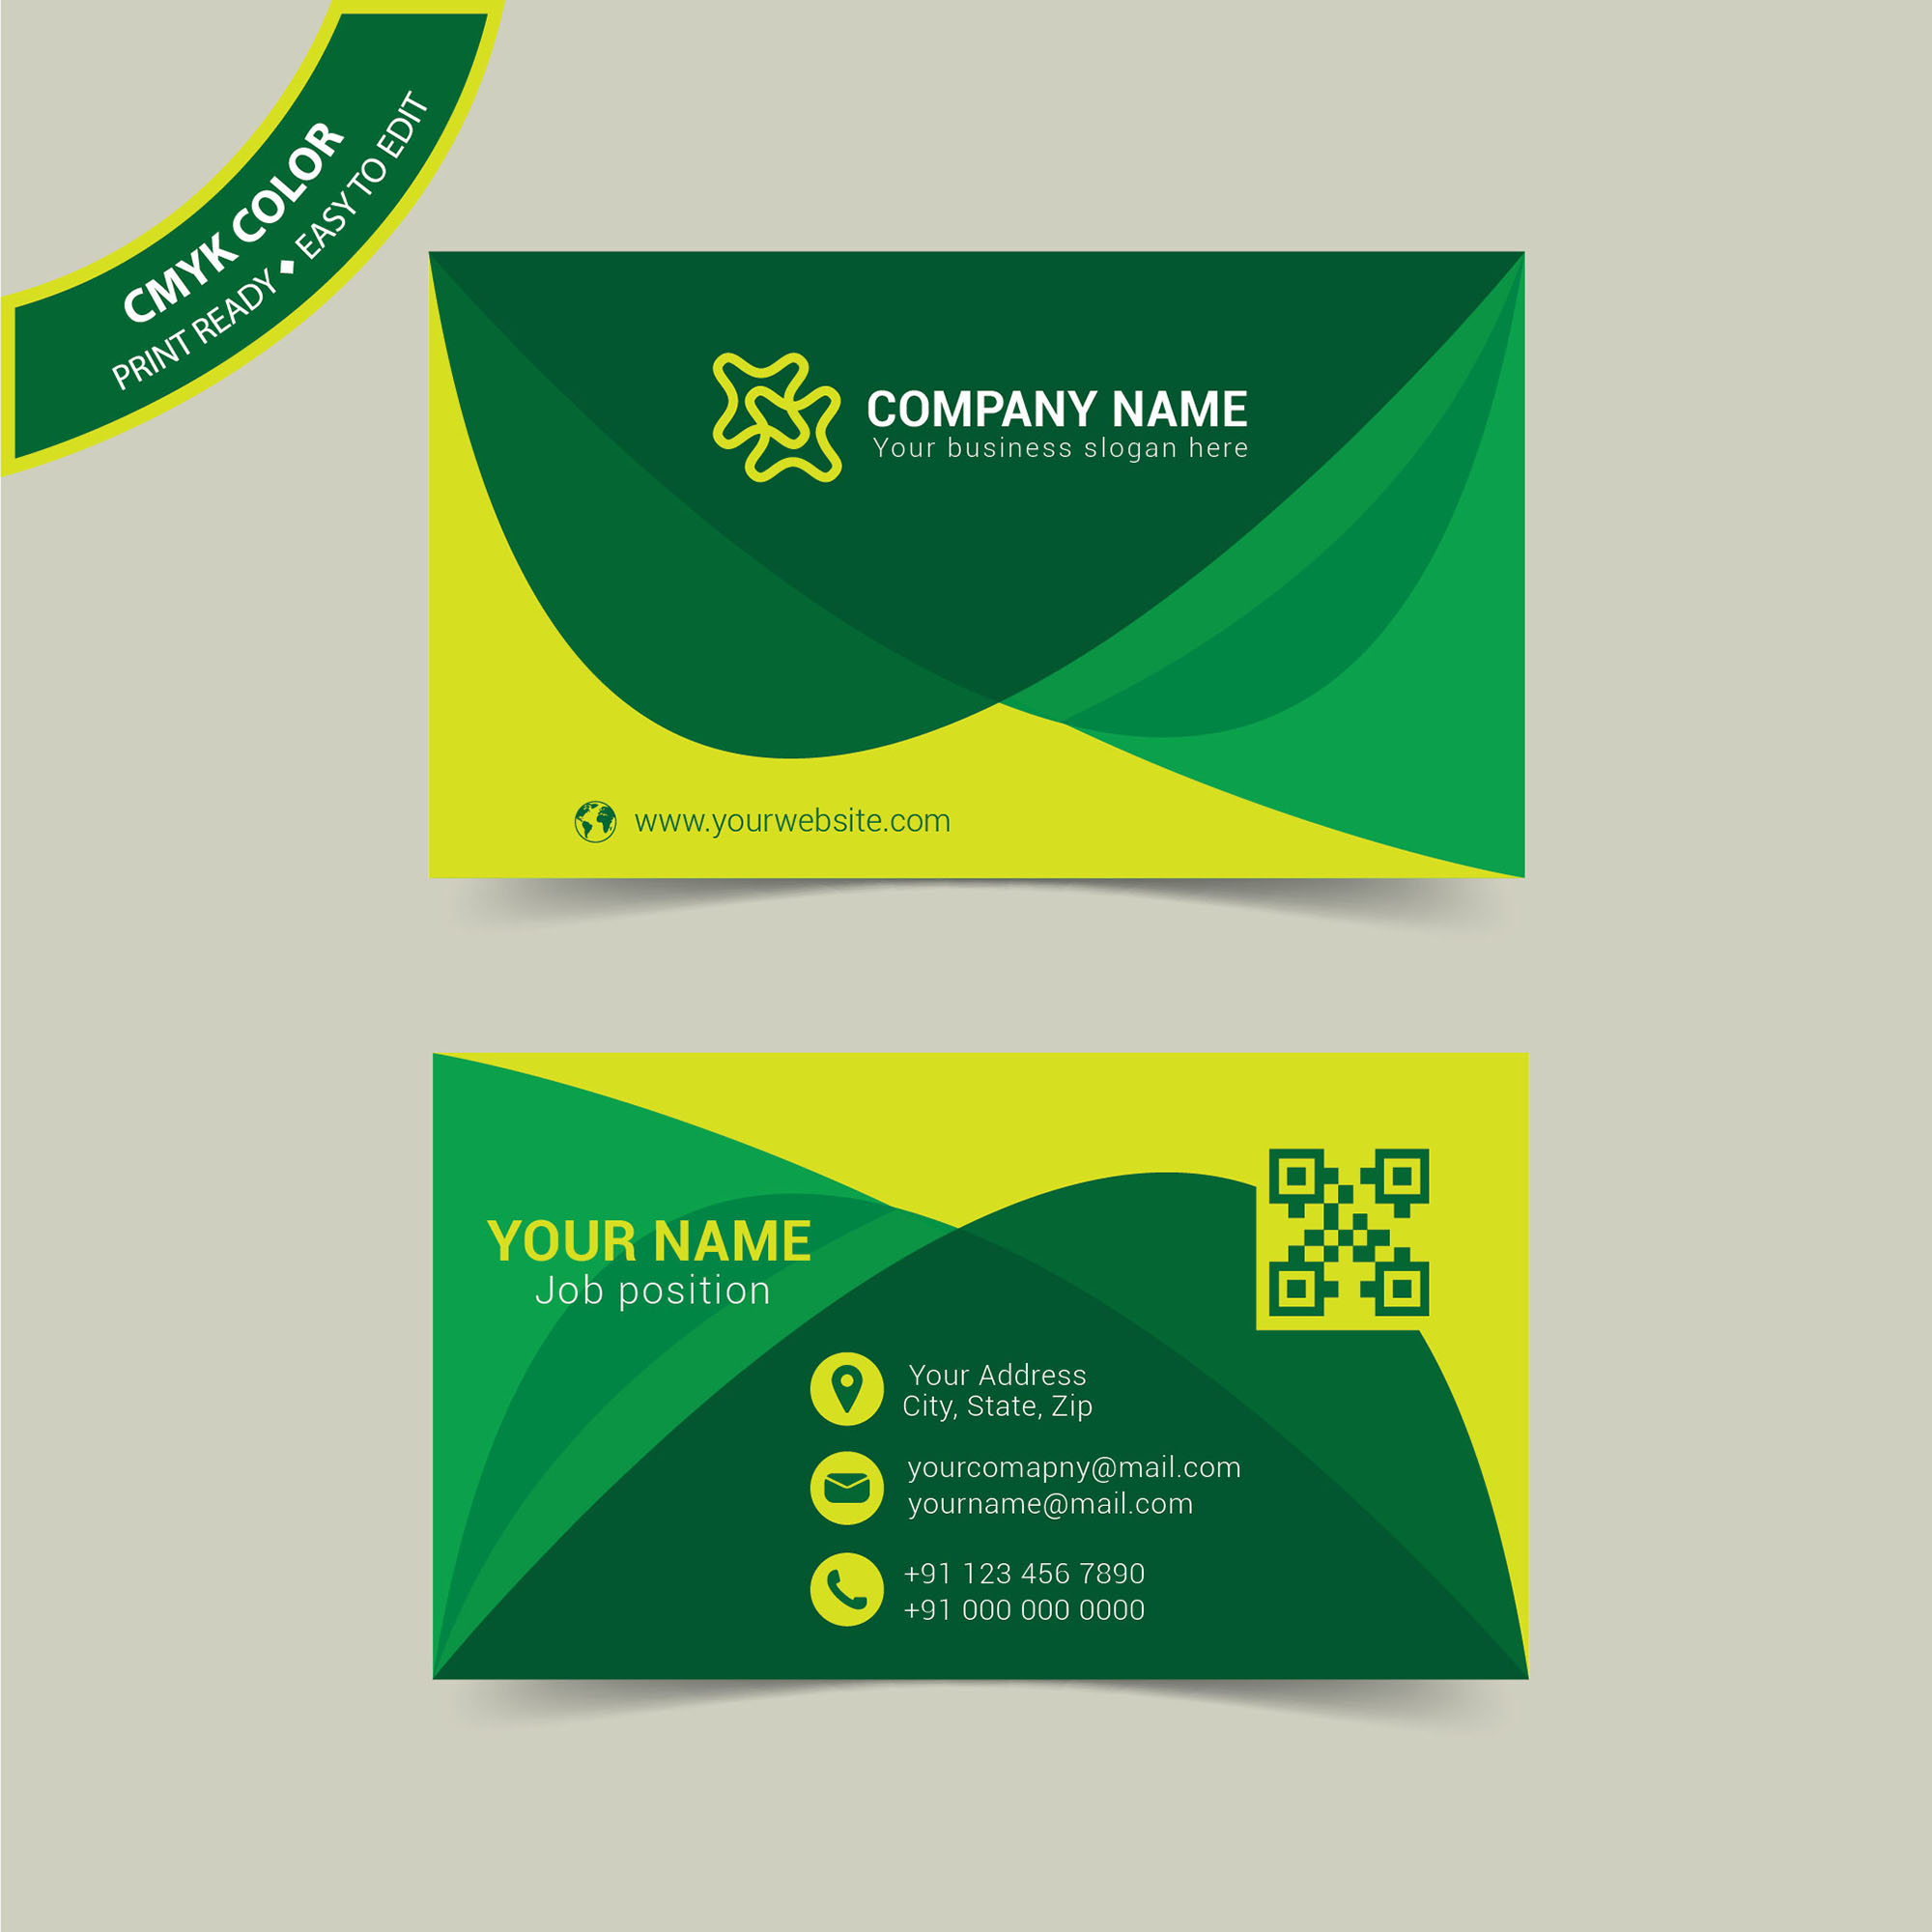 elegant business card design free download wisxi com